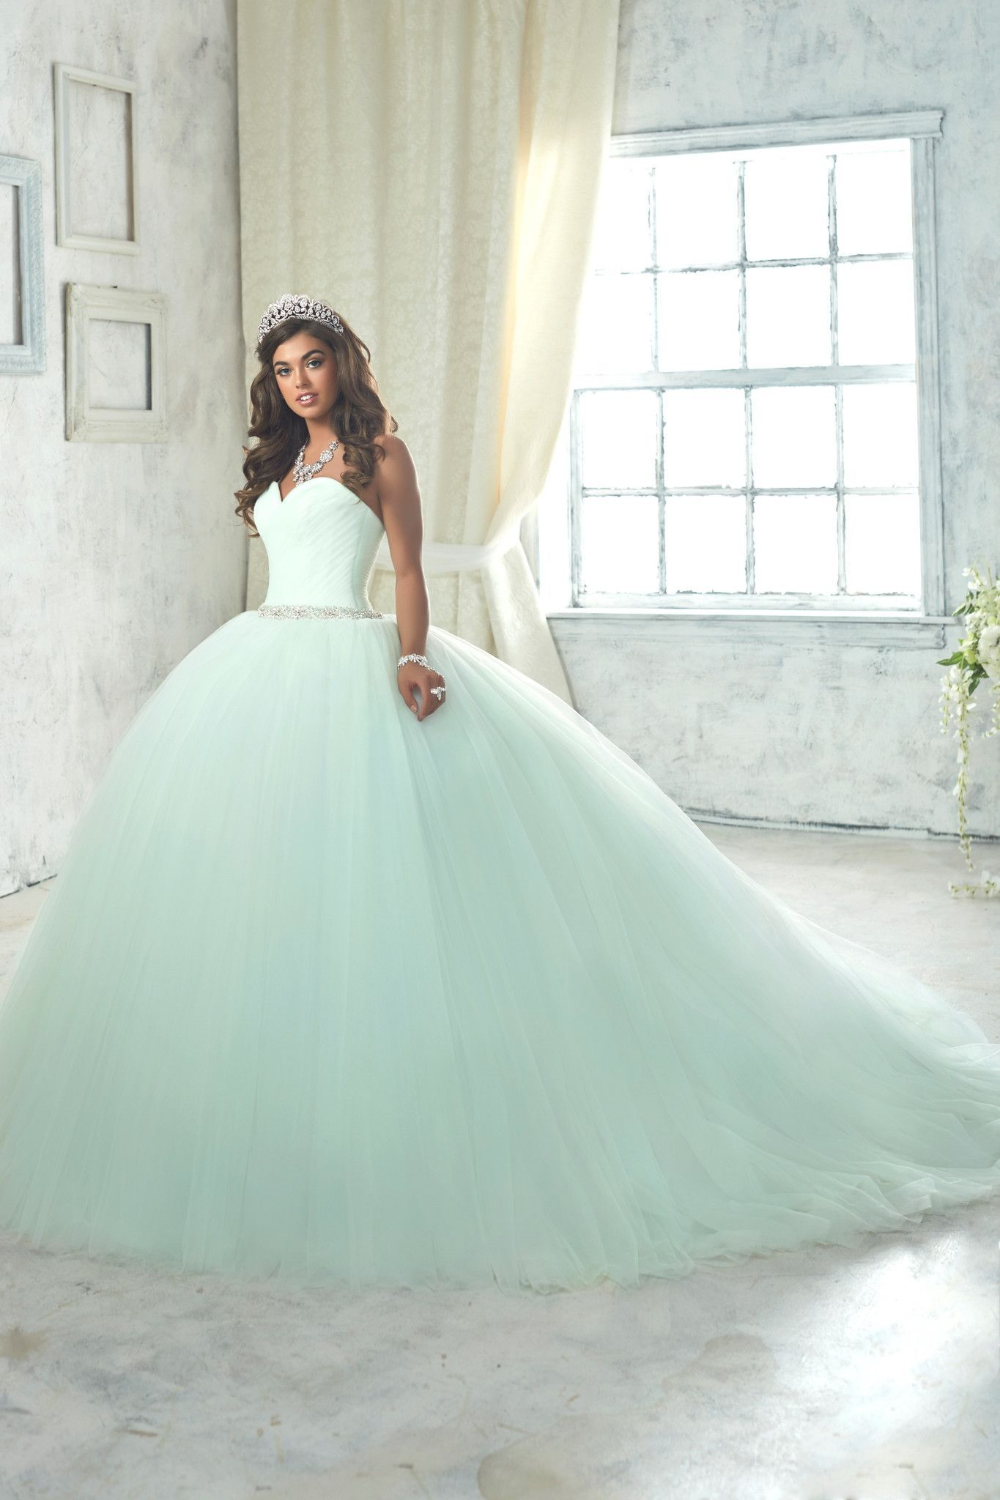 Enticing Mint Green Ball Gown,Sweetheart Tulle Beaded Quinceanera Dresses,Sweet 16 Dresses,Sleeveless Prom Party Gown with Long Train #tulleballgown